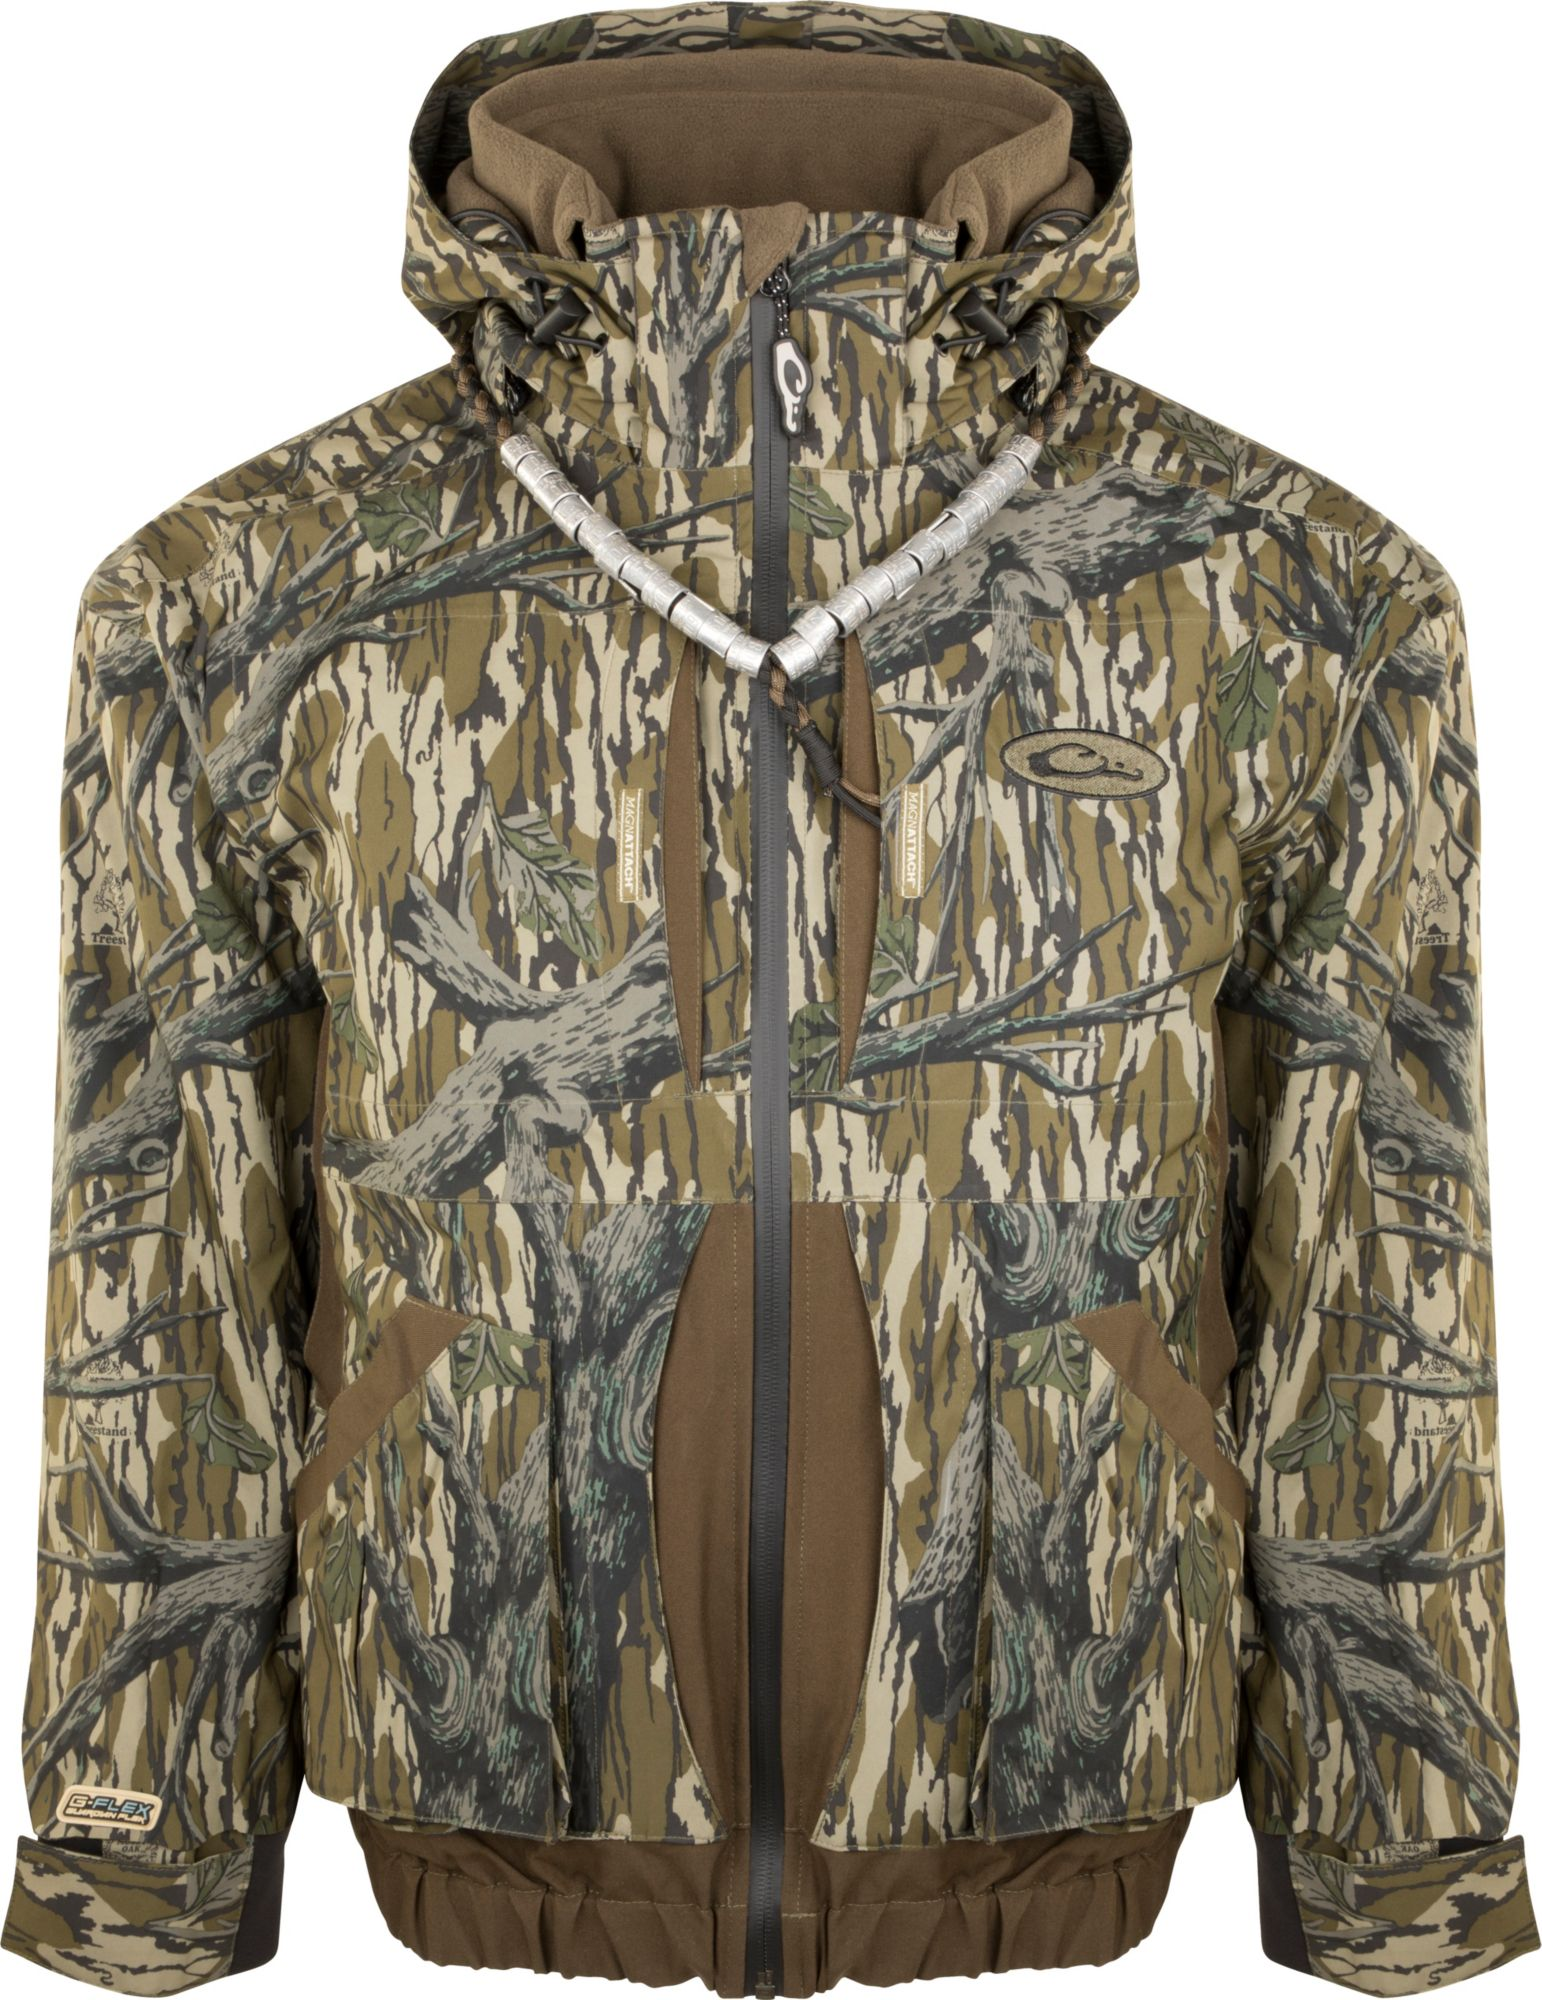 Drake Waterfowl Men's Guardian Flex 3-in-1 Systems Hunting Coat, Size: Medium, Mossy Oak Orig Treestand thumbnail